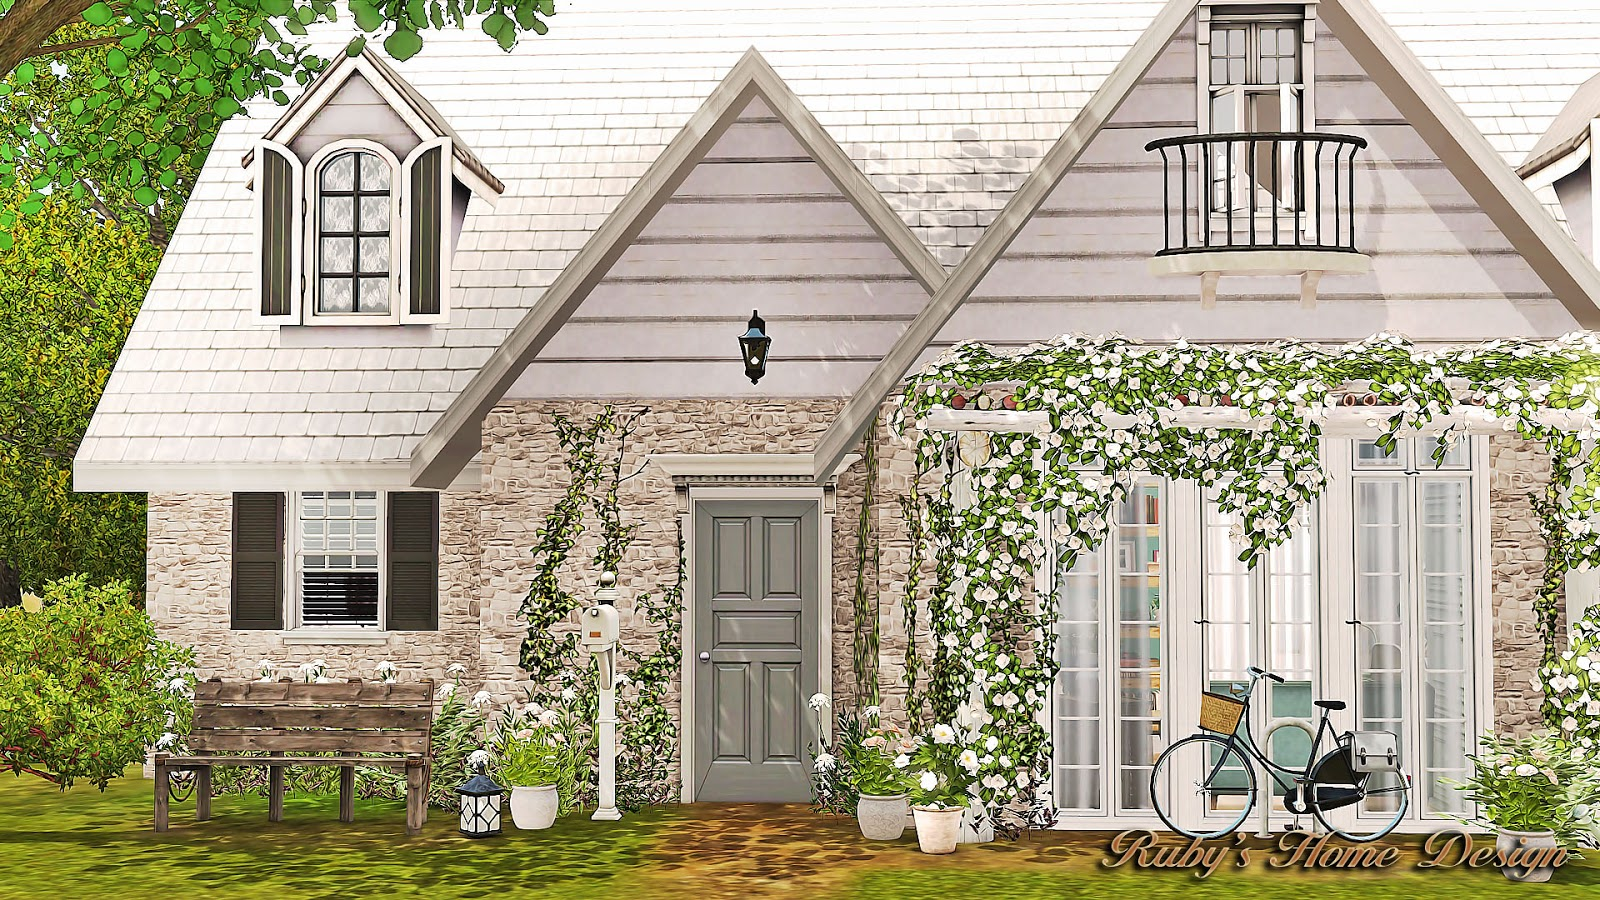 Sims3 Minty House 香草薄荷- Ruby's Home Design on